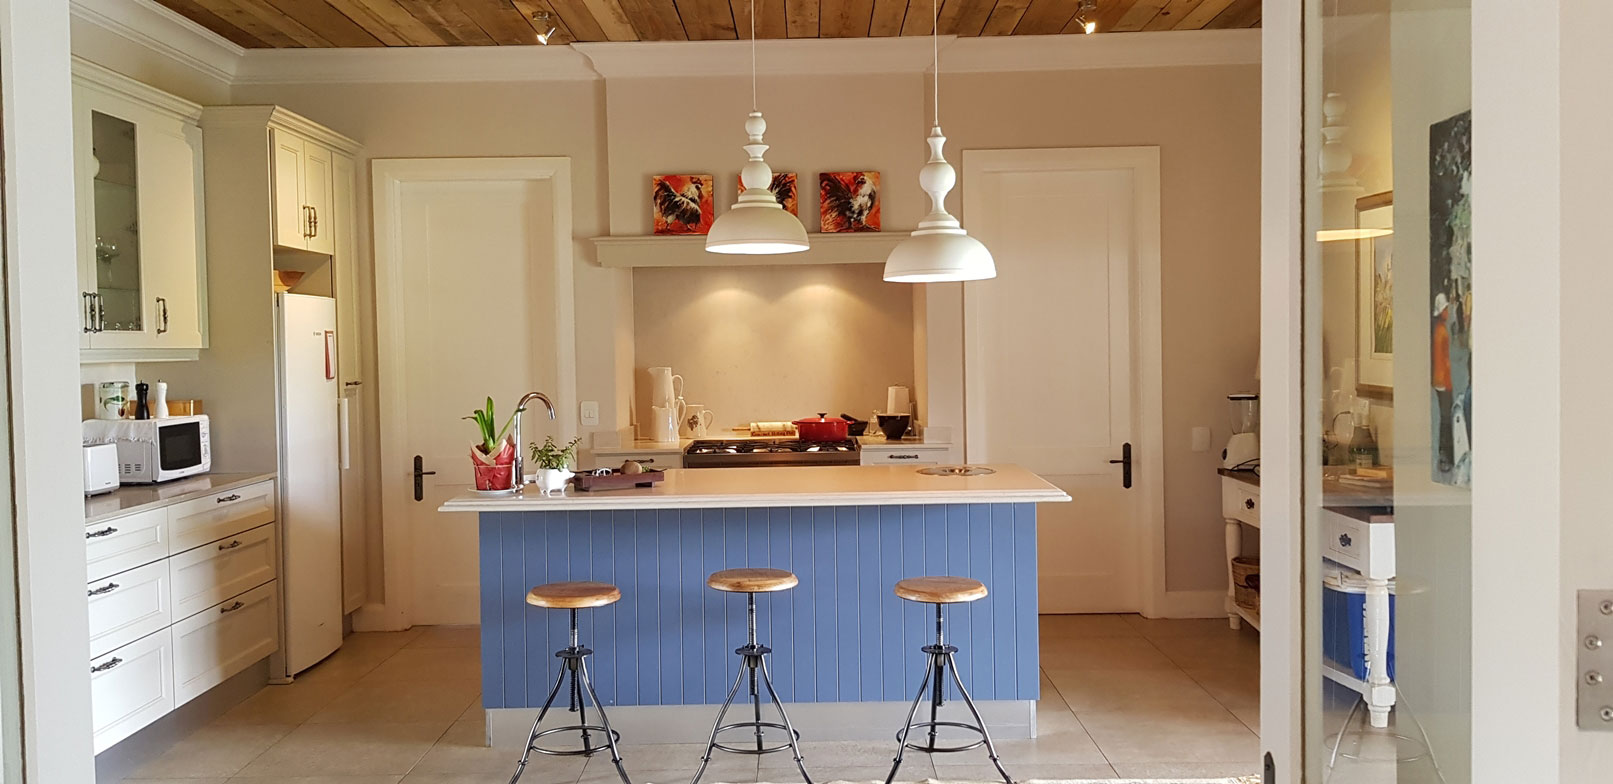 Kitchen Design Za Designer Kitchens Bespoke Furniture Joinery And Woodworking